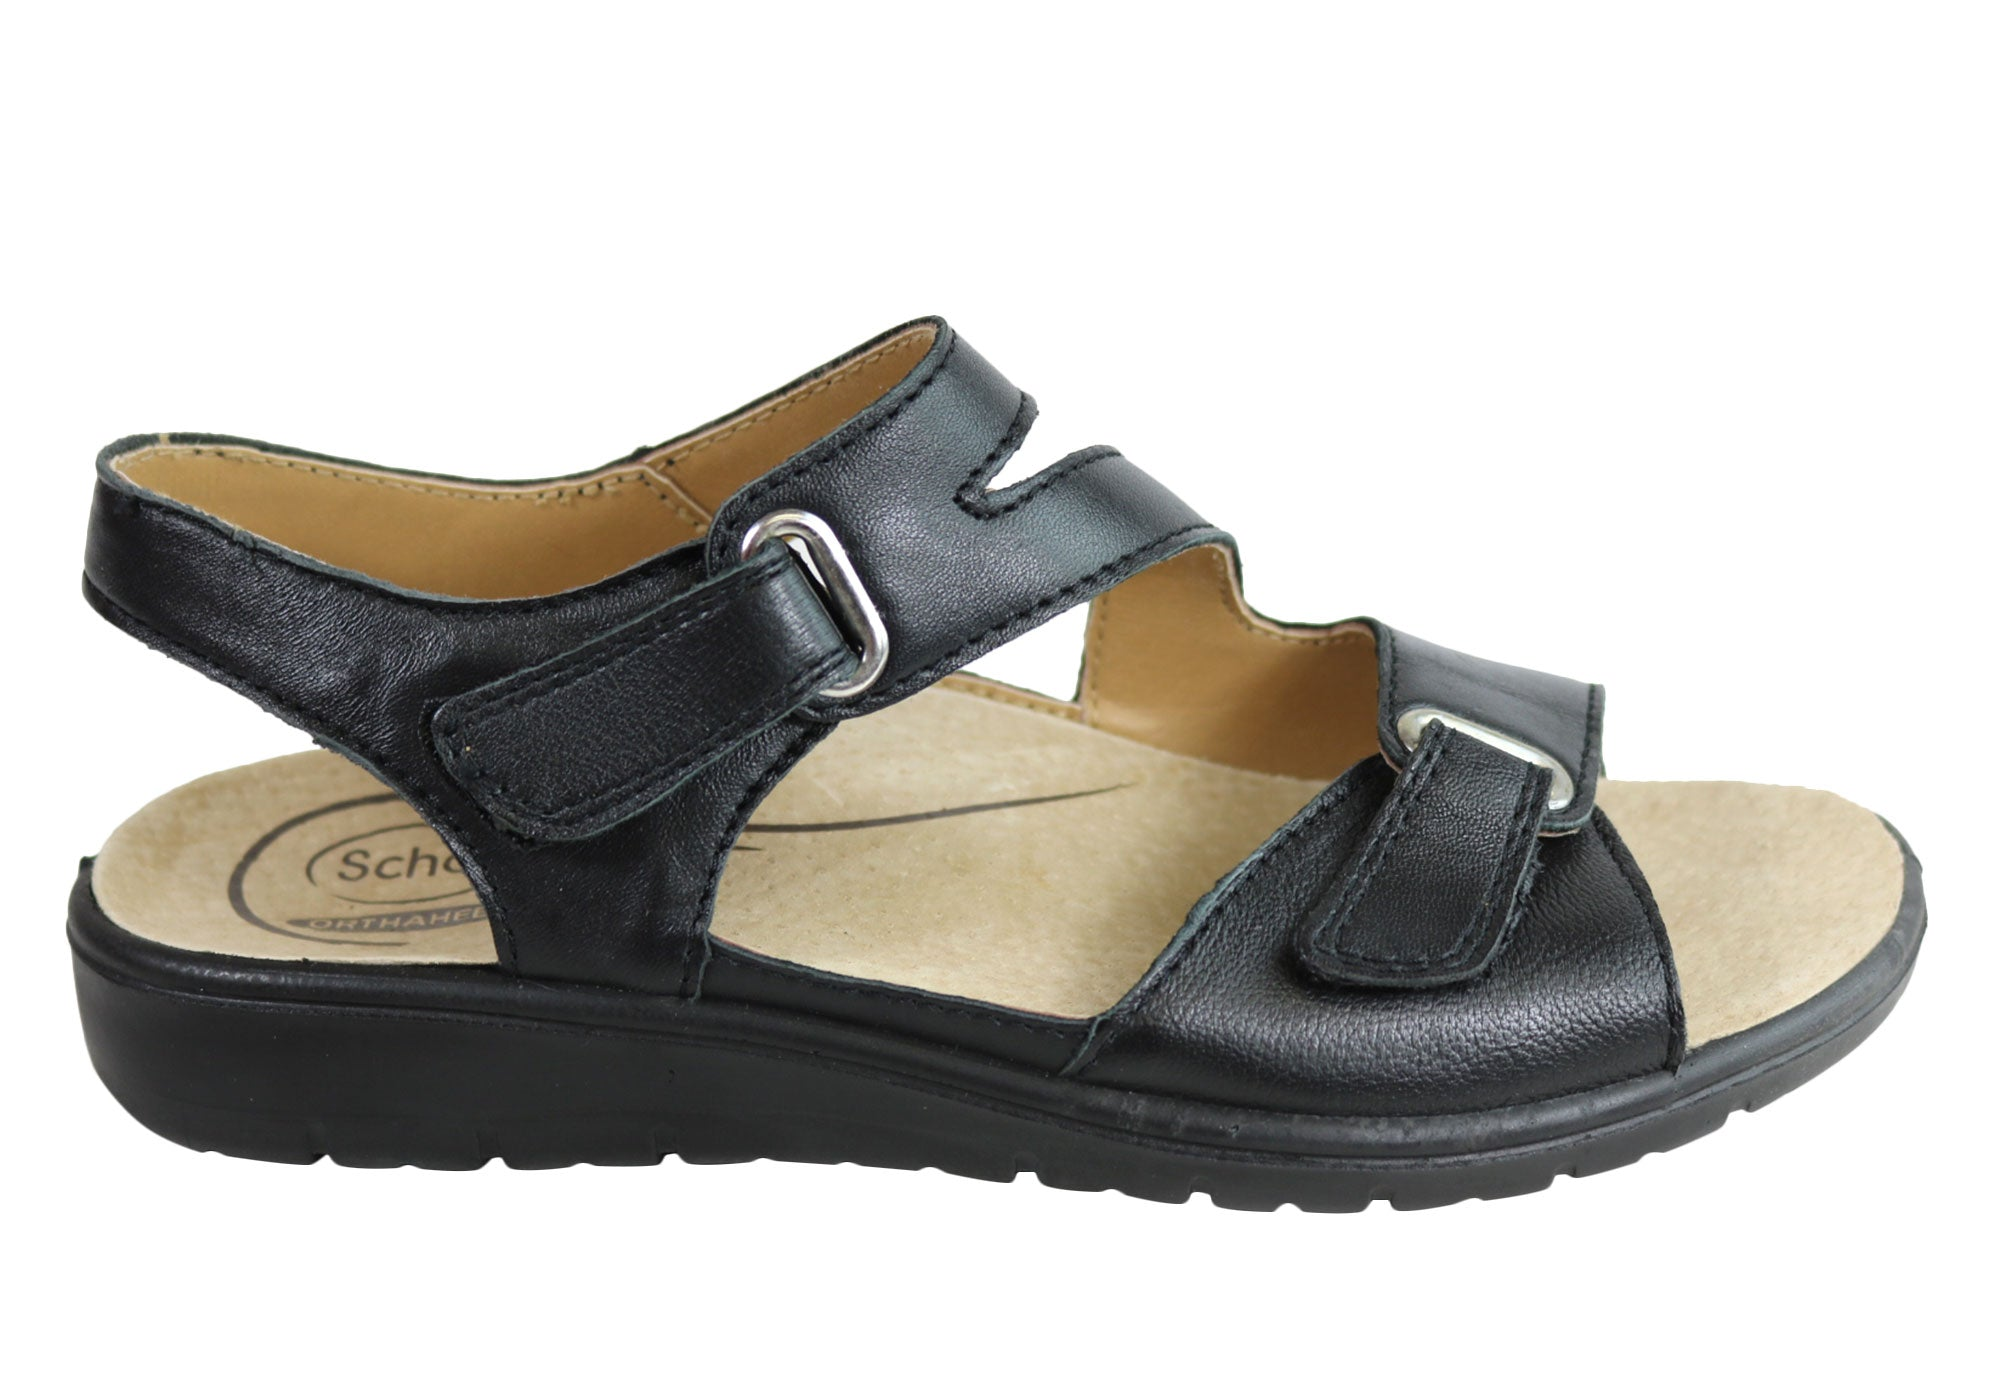 Scholl Orthaheel Acapulco Womens Comfort Orthotic Friendly Sandals ... a24981b4f06